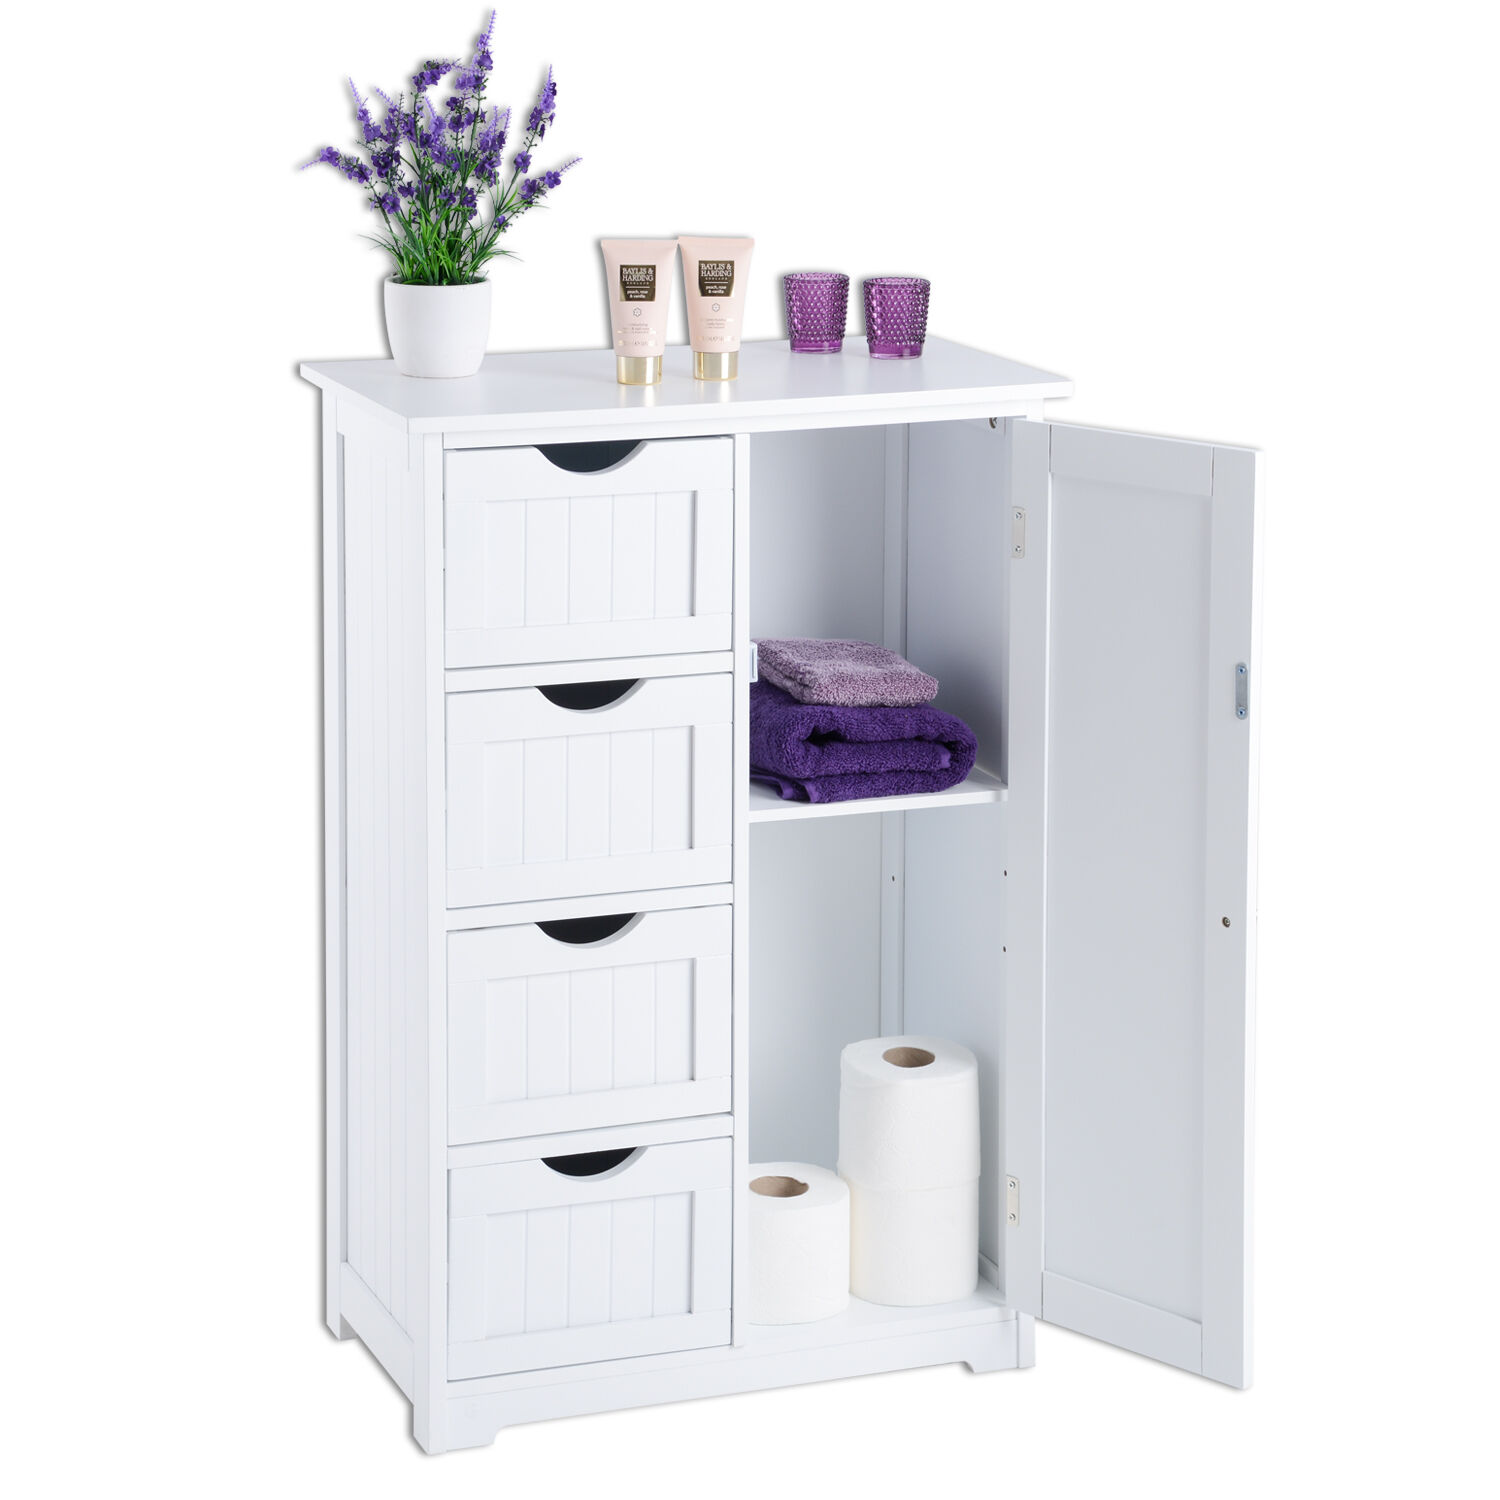 White wooden 4 drawer bathroom cabinet storage cupboard for White bathroom furniture